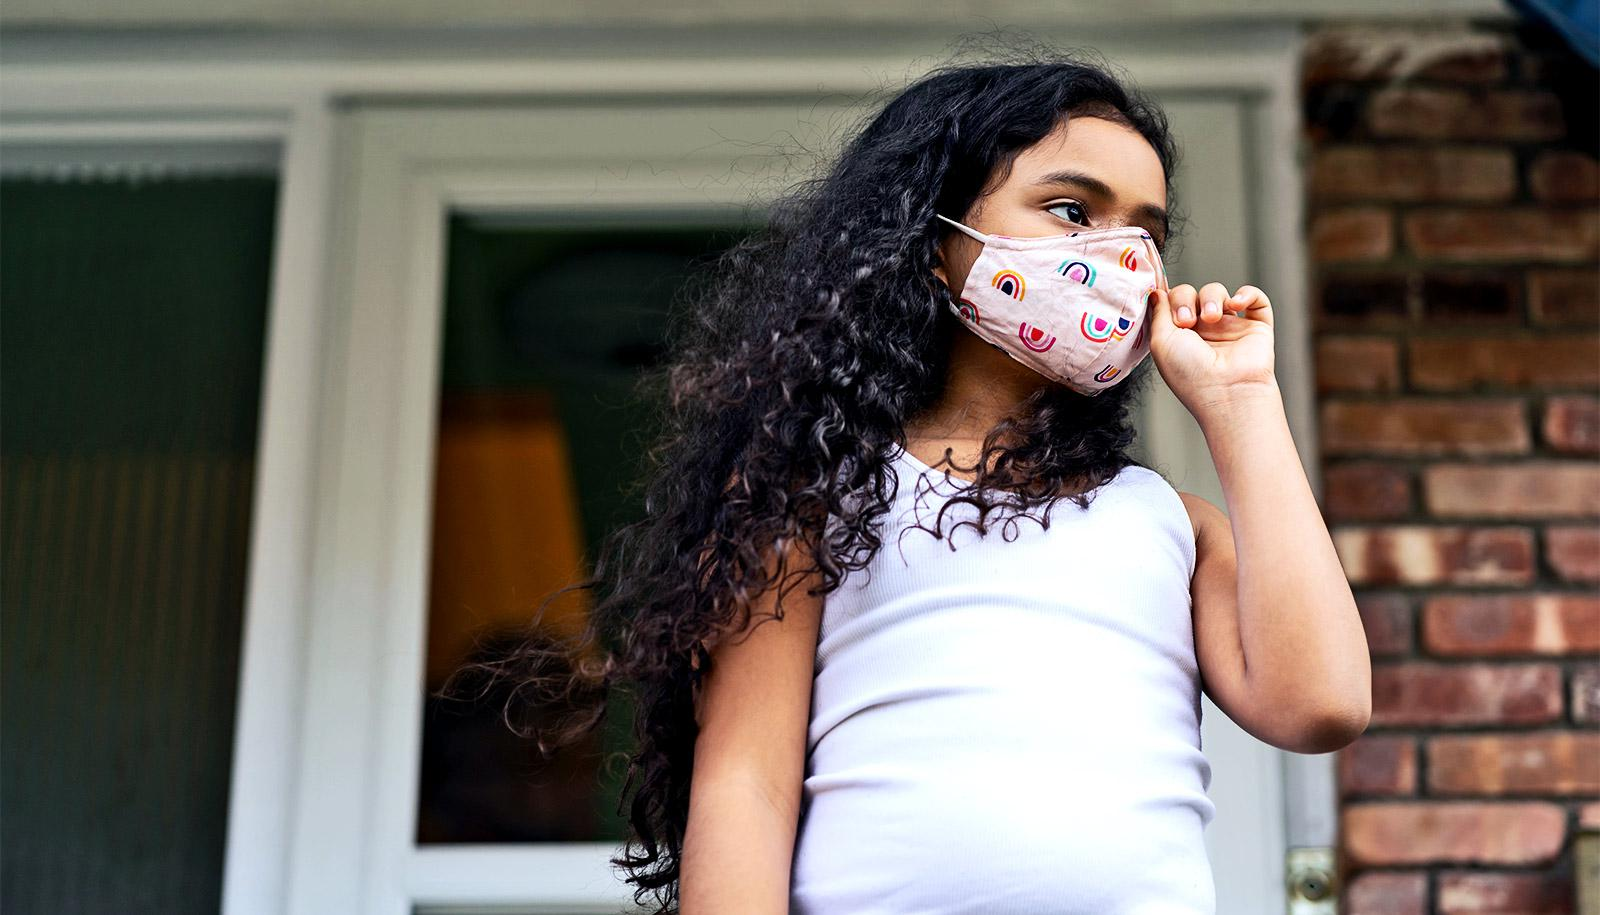 A young girl wearing a face mask stands outside her house looking up the street